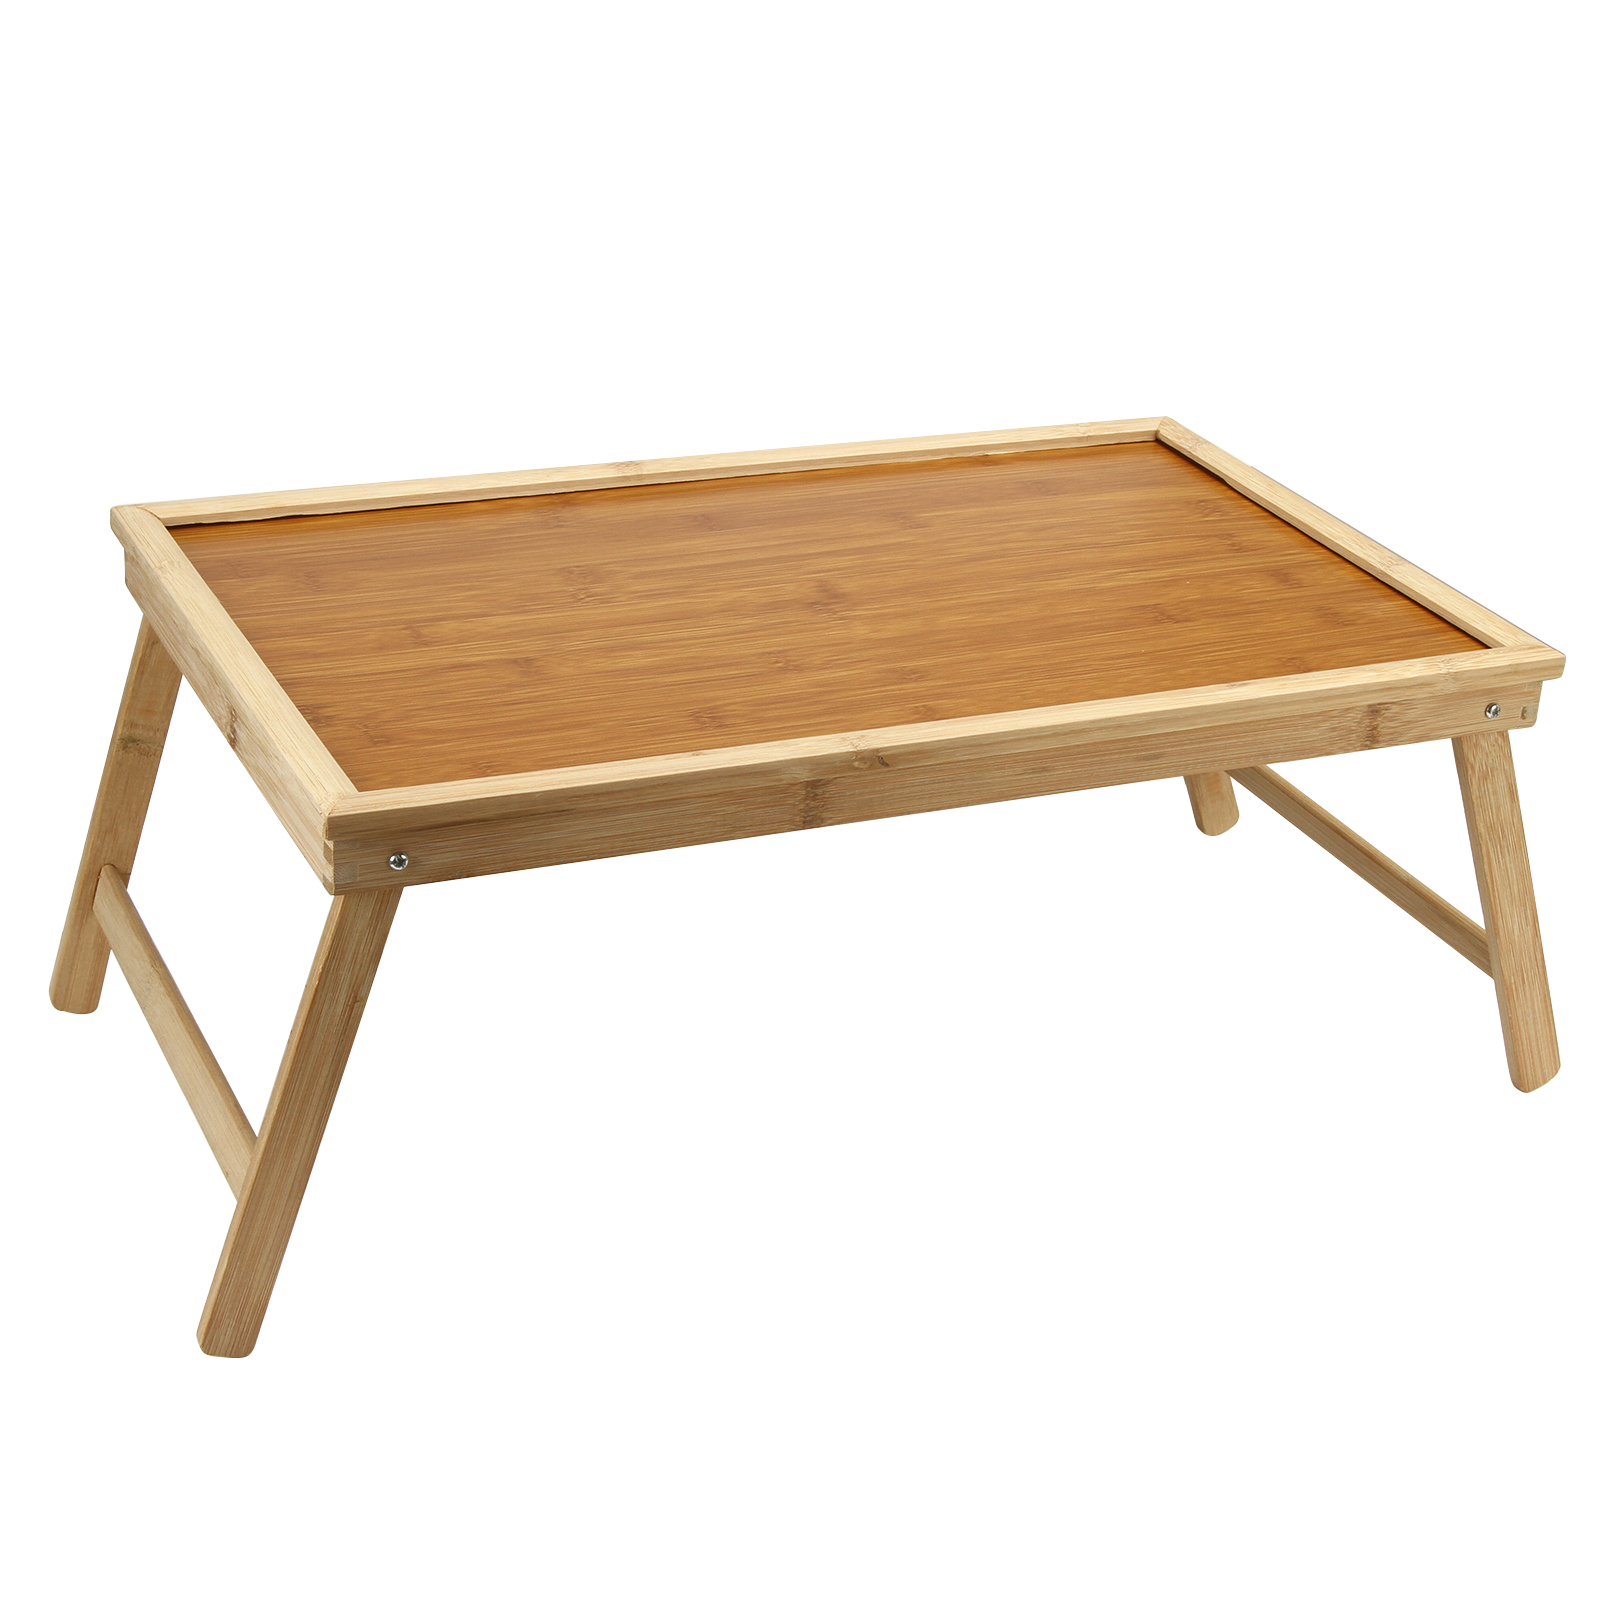 50*30*20cm Laptop Stand Bed Tray Table With Folding Legs,Serving Breakfast In Bed Or Use As A TV Table, Laptop Computer Tray